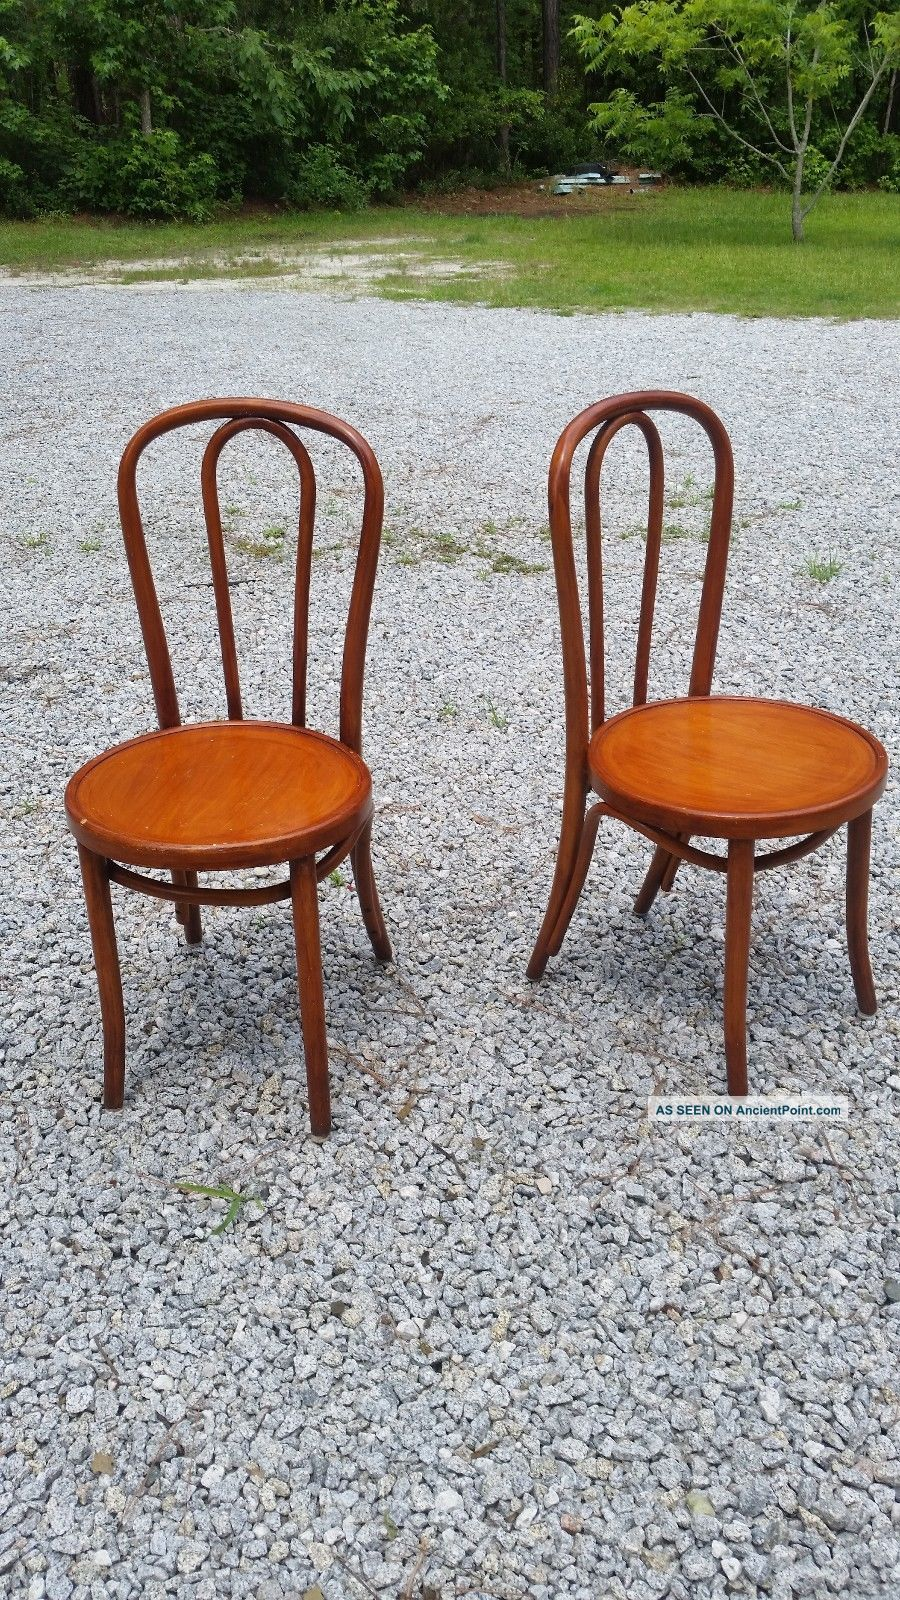 Thonet Bentwood Antique Bistro Chairs Has Tag On One 1900-1950 photo